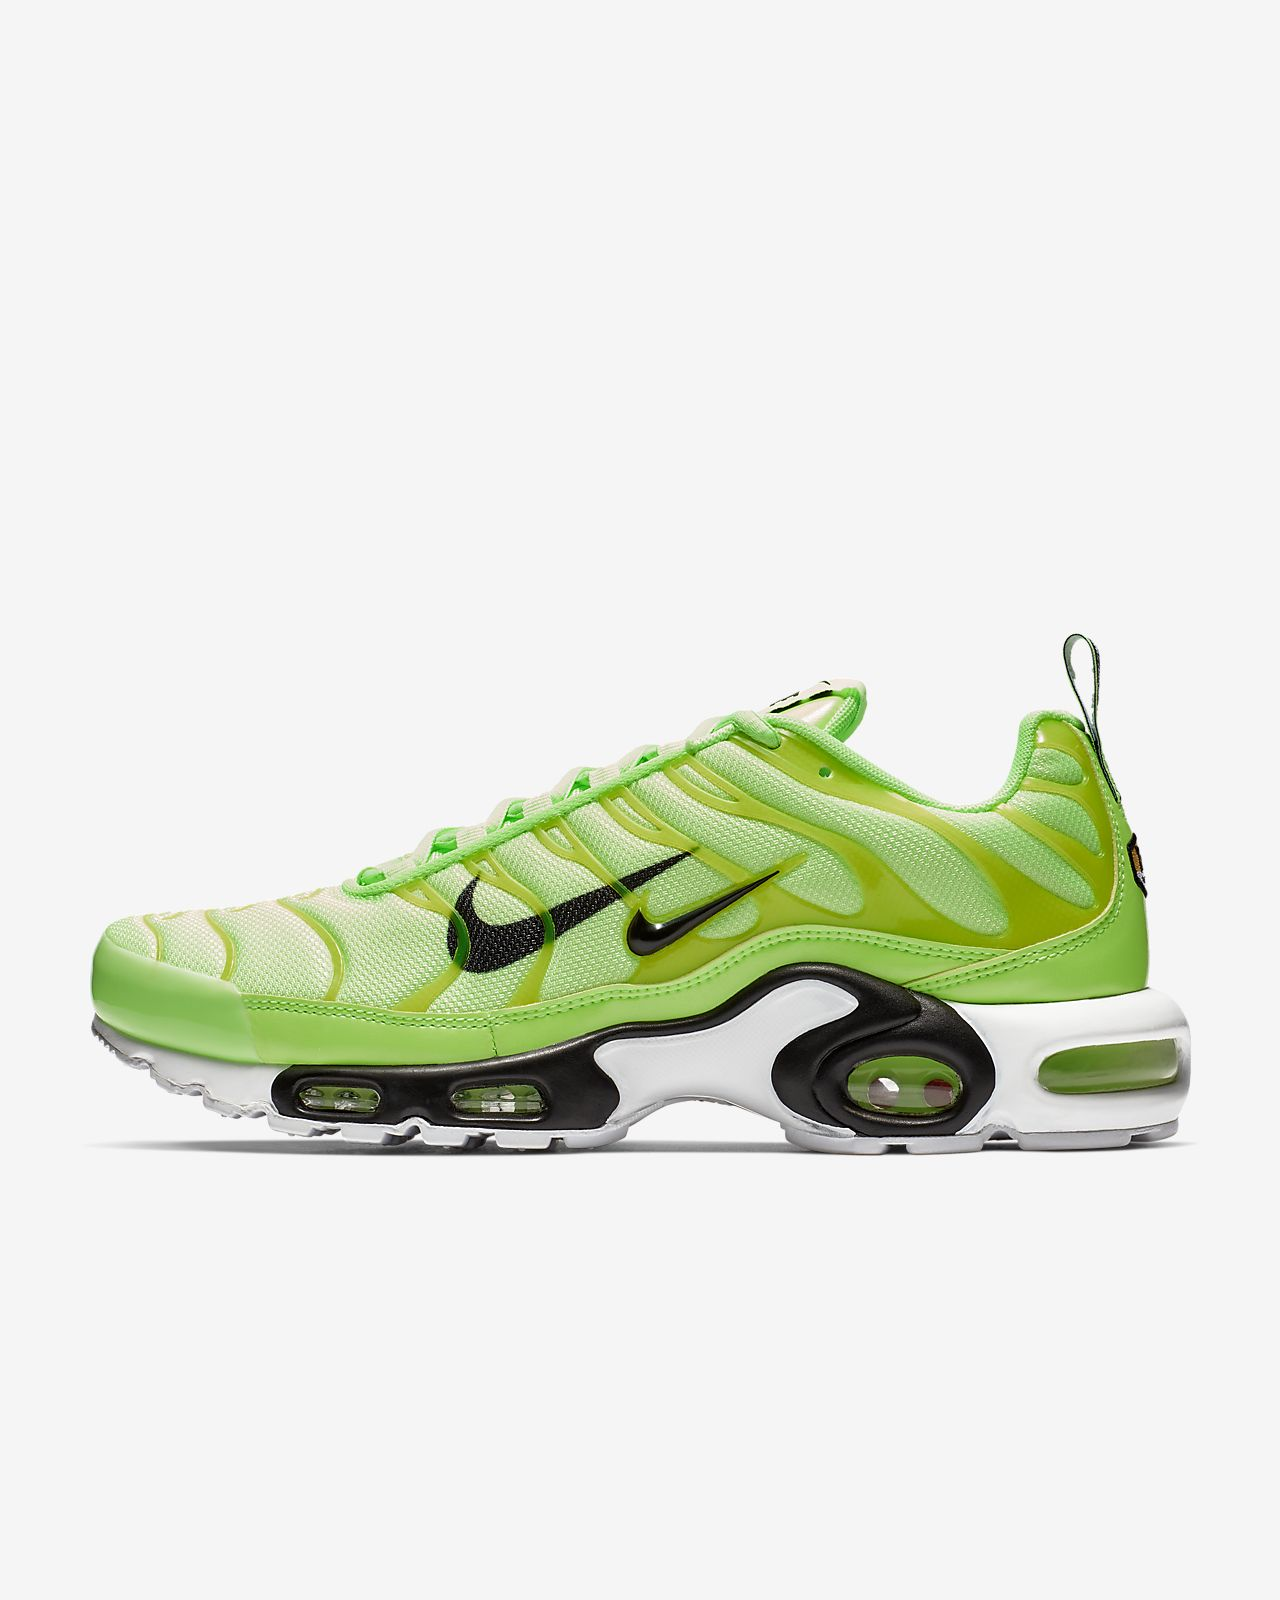 8bd03e48b015 Nike Air Max Plus Premium Men s Shoe. Nike.com SE